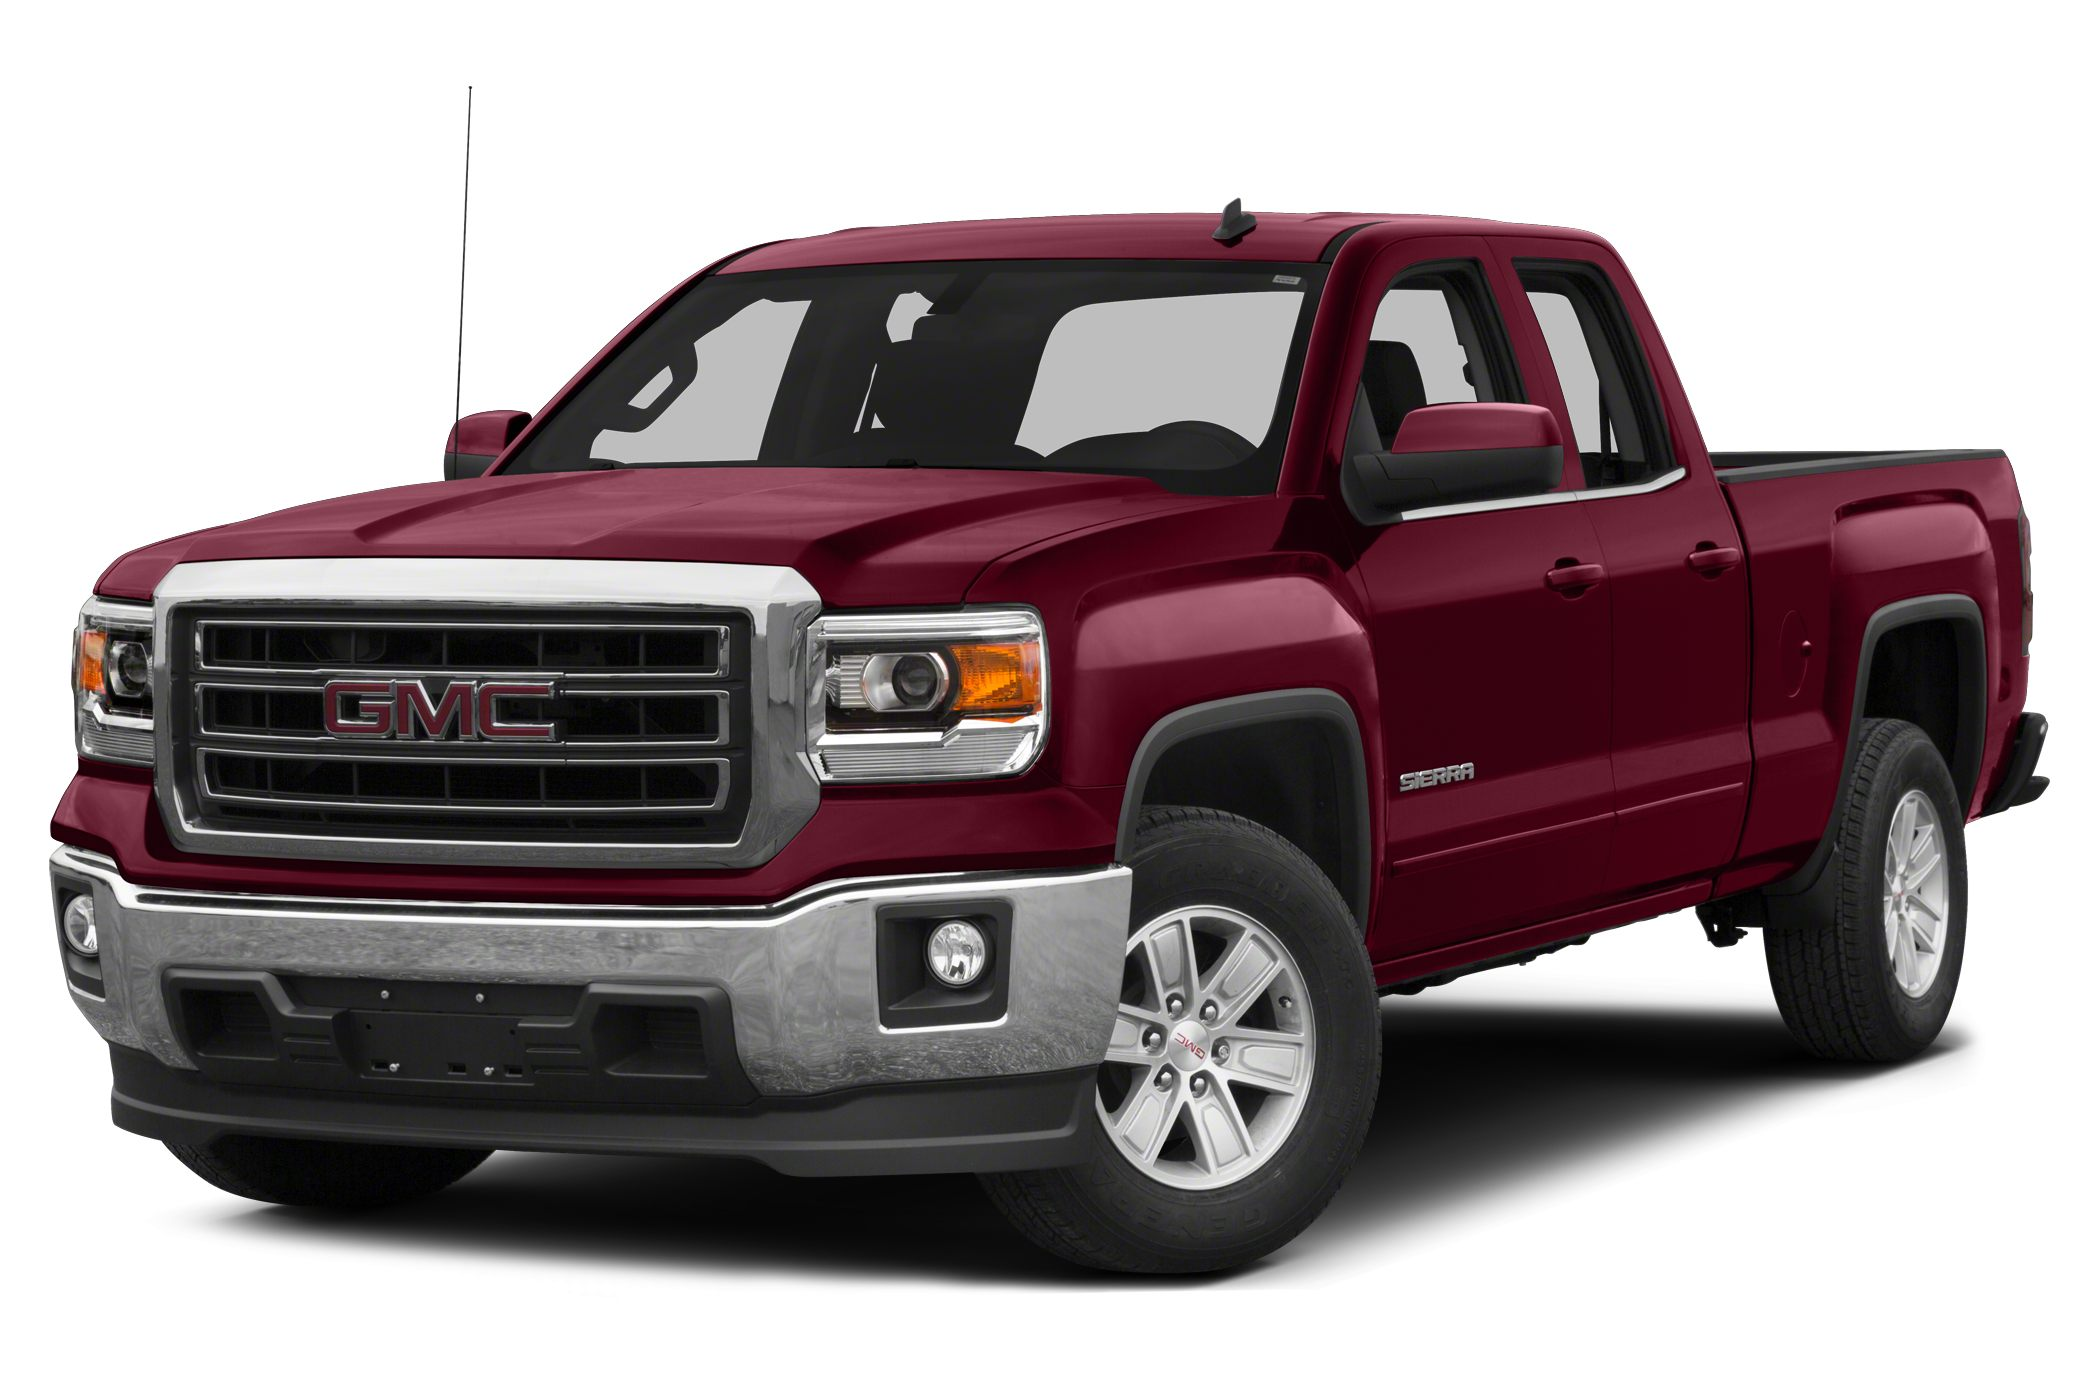 2014 GMC Sierra 1500 SLT Crew Cab Pickup for sale in Pampa for $47,365 with 0 miles.